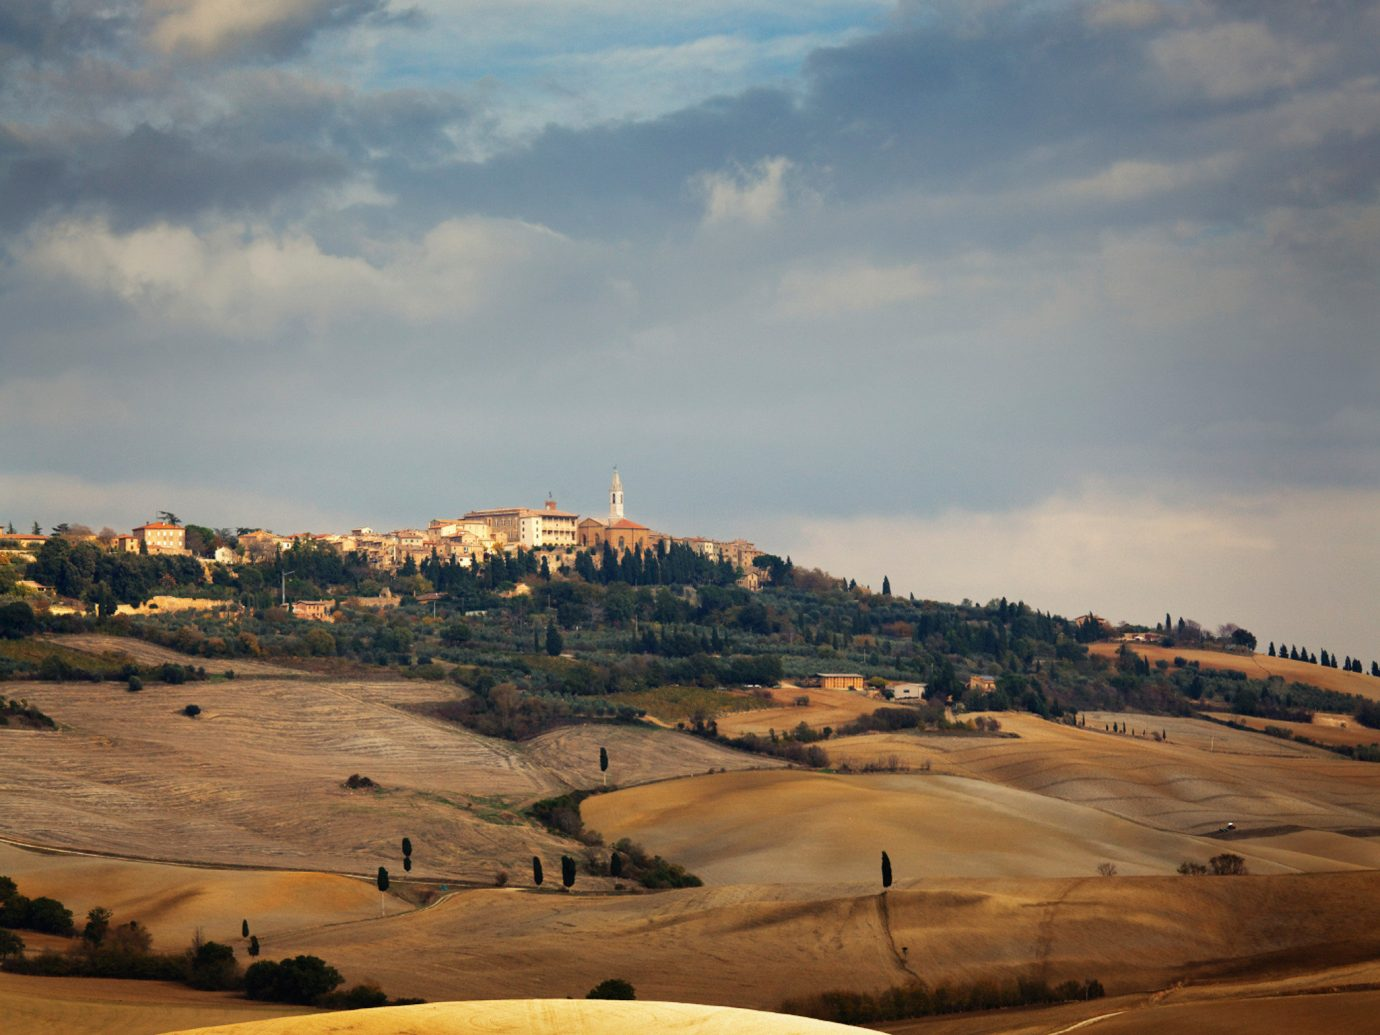 Country Italy Scenic views Trip Ideas sky outdoor cloud horizon natural environment Nature Sea plain Coast hill sand atmosphere of earth landscape Sunset morning dusk evening Beach rural area dawn aeolian landform Desert sunlight meteorological phenomenon clouds cloudy shore day sandy dune soil